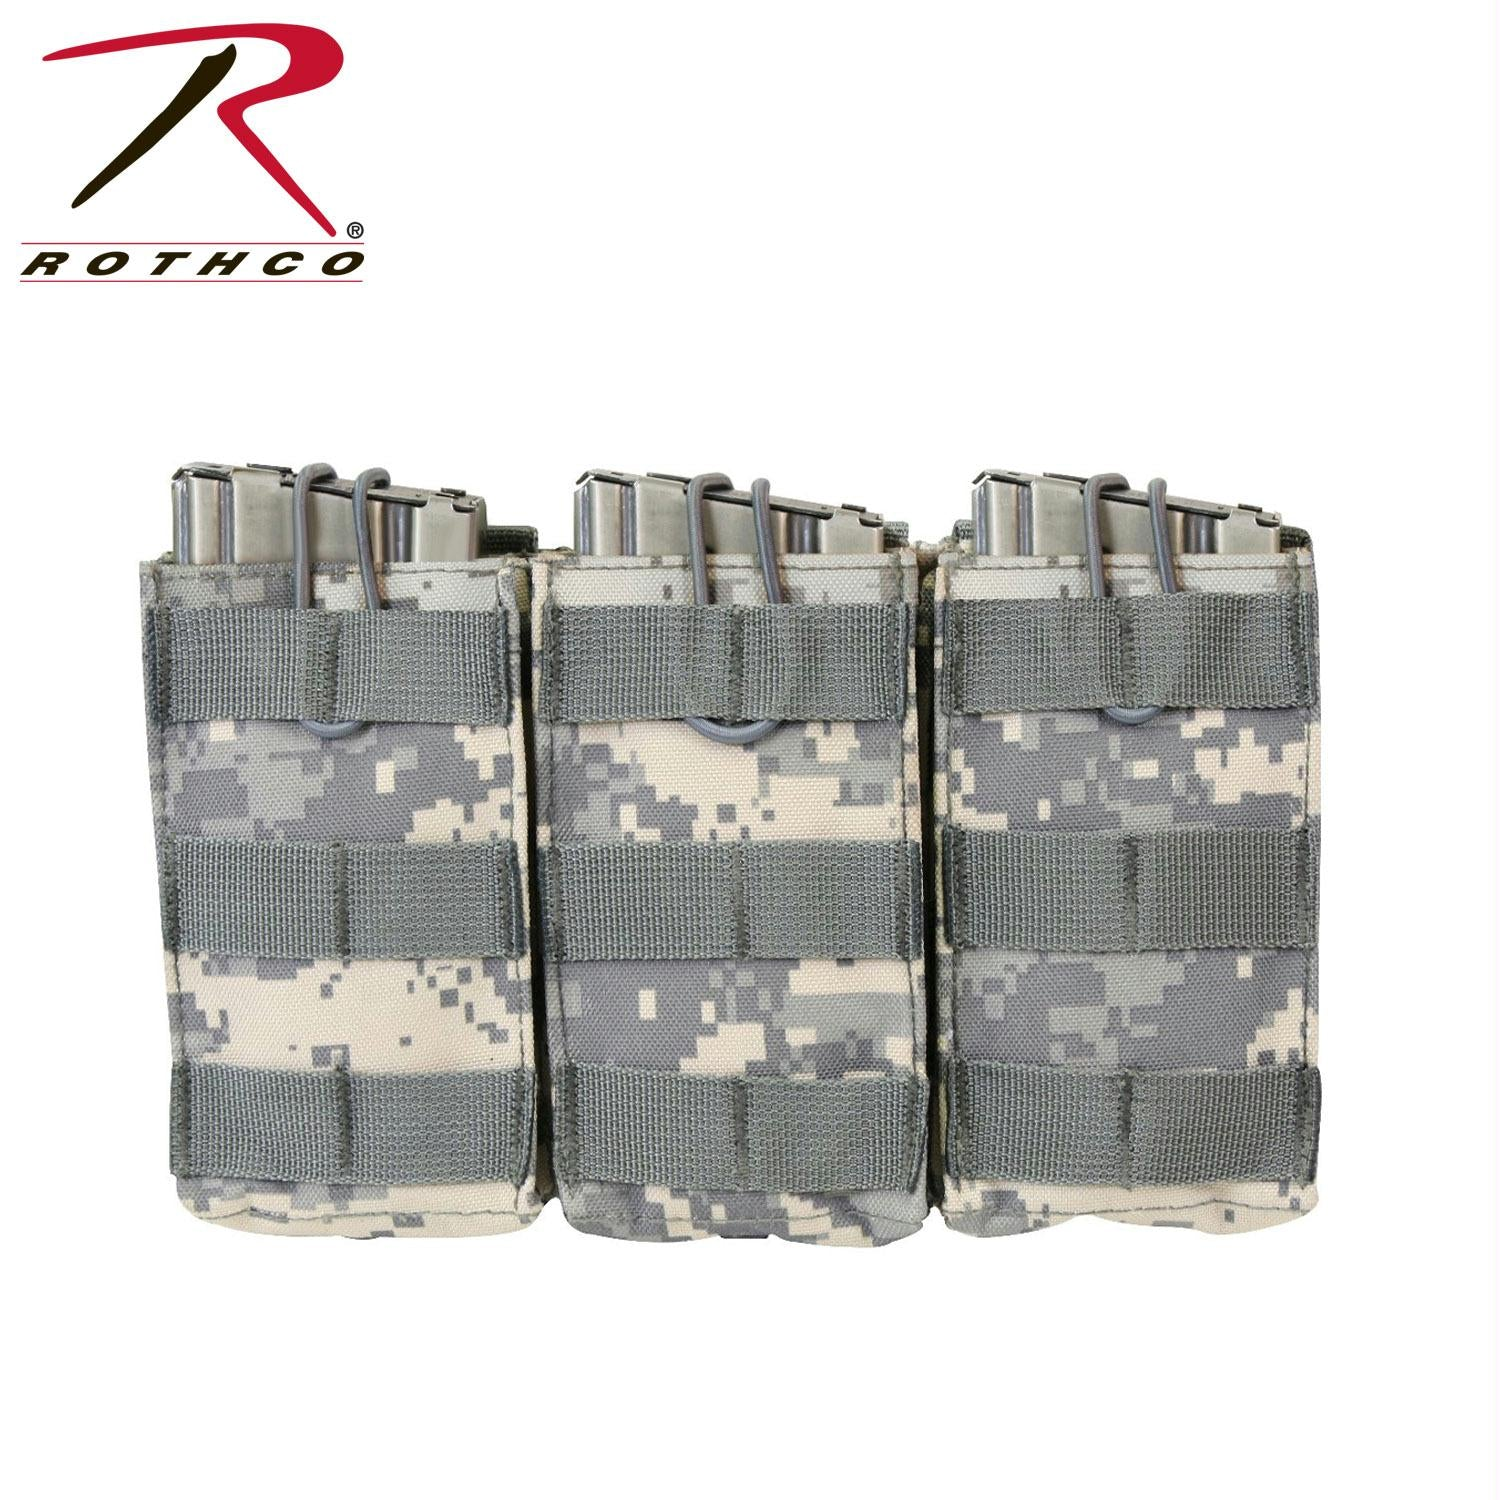 Rothco MOLLE Open Top Triple Mag Pouch - ACU Digital Camo